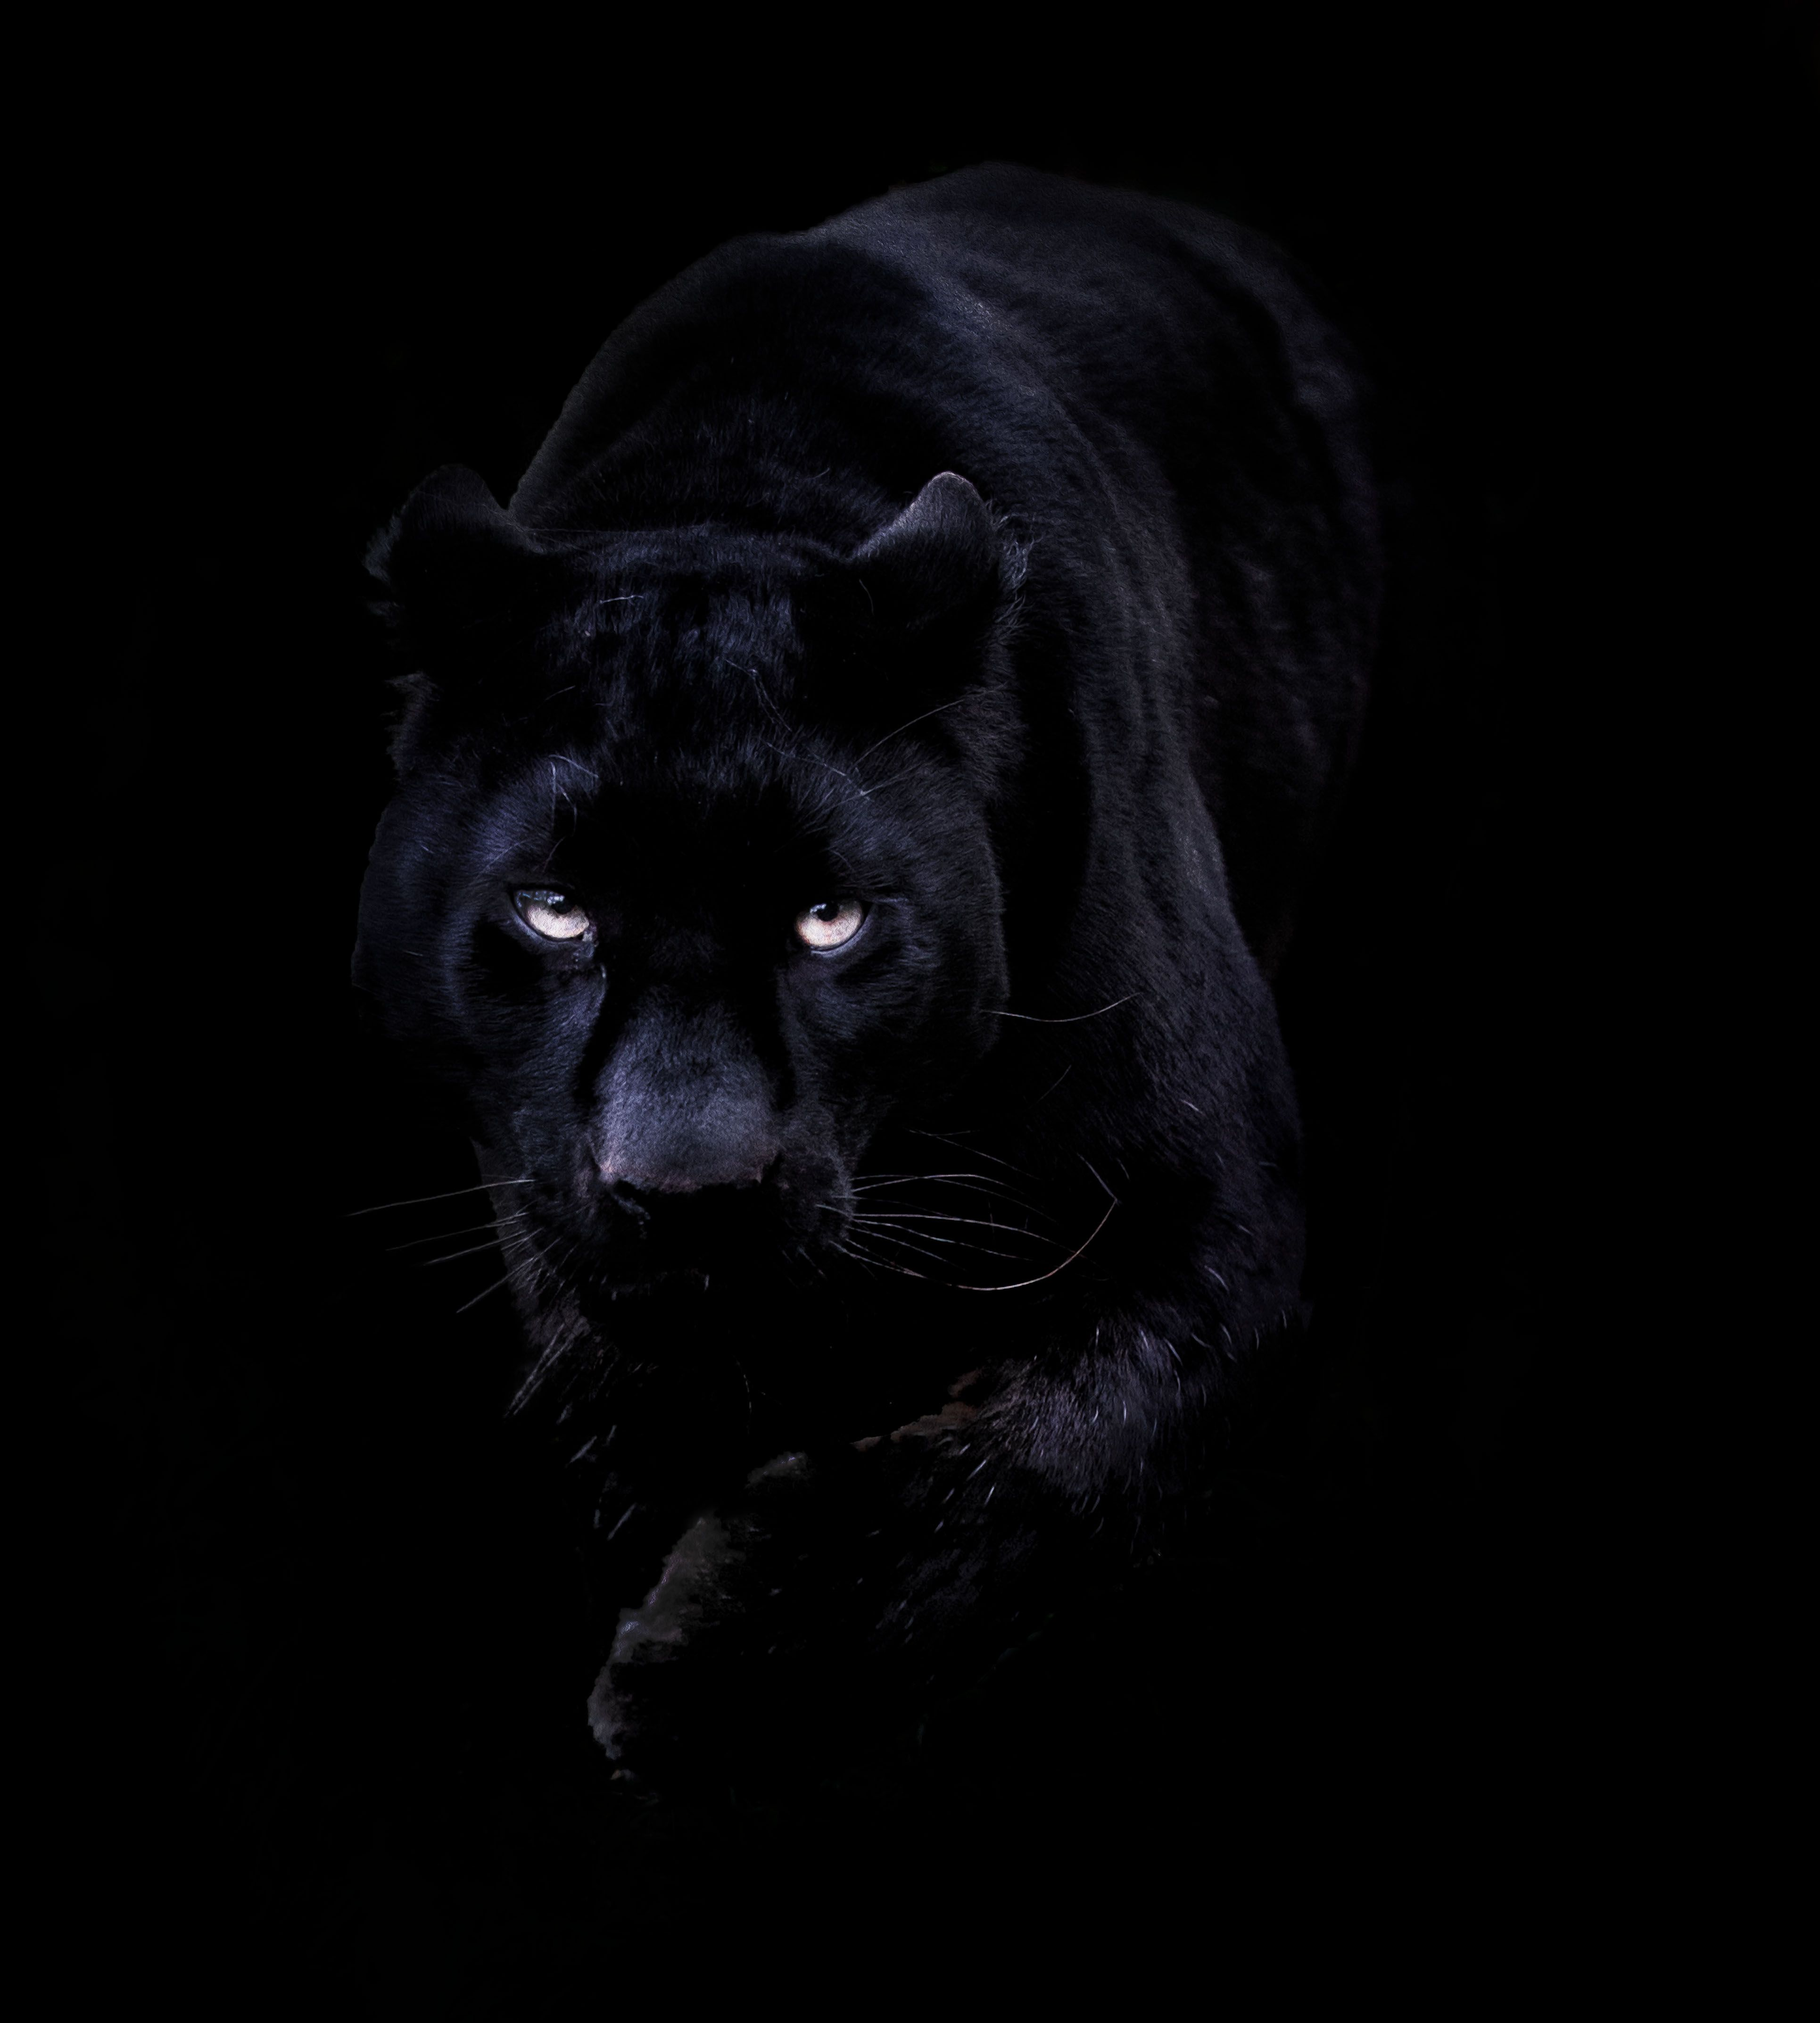 Wallpapers For Black Panther Iphone Wallpaper 3860x4290